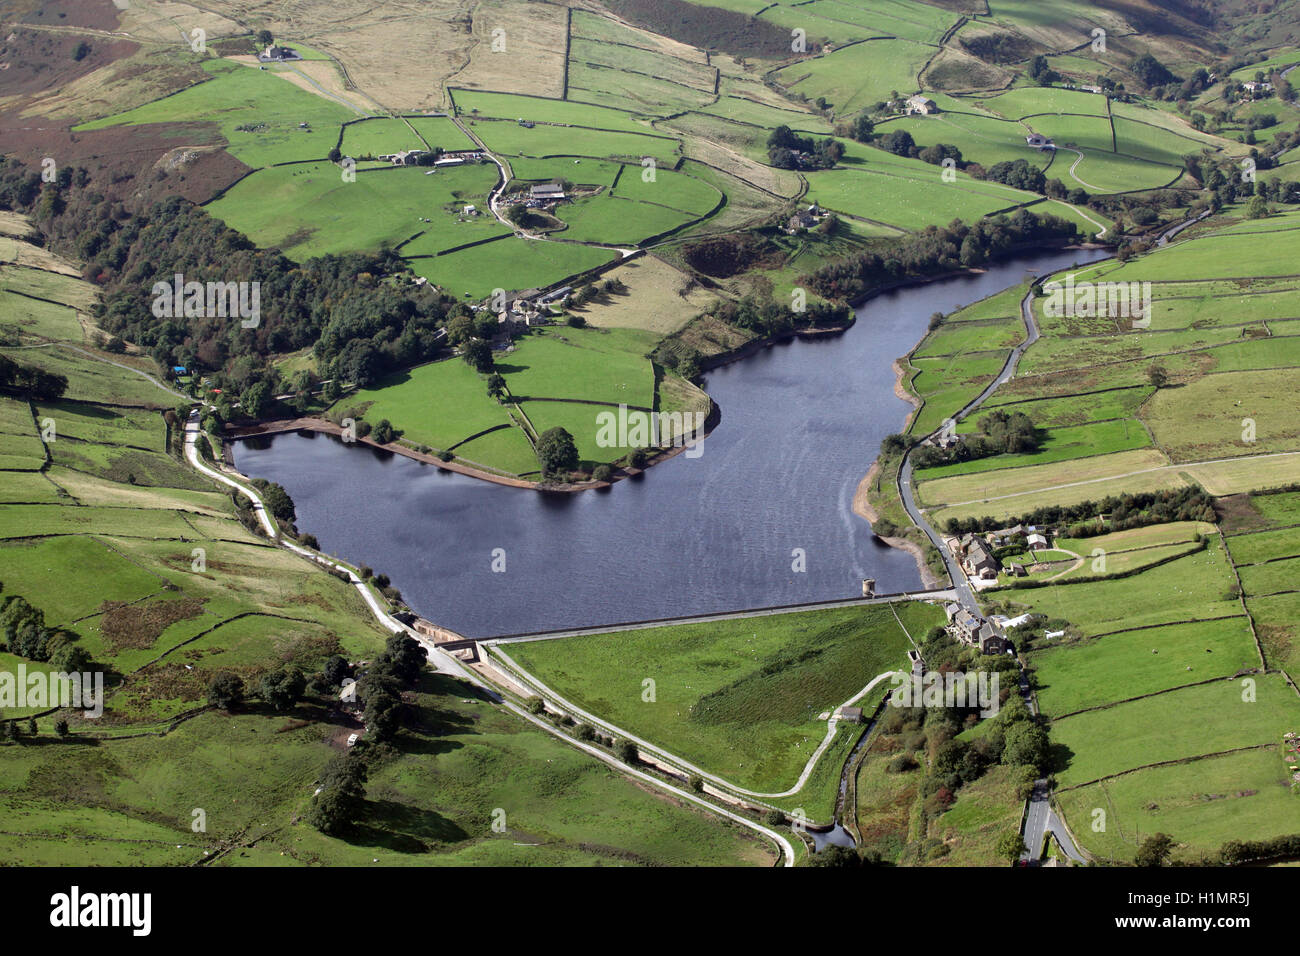 aerial view of Ponden Reservoir at Stanbury near Keighley, West Yorkshire, UK - Stock Image